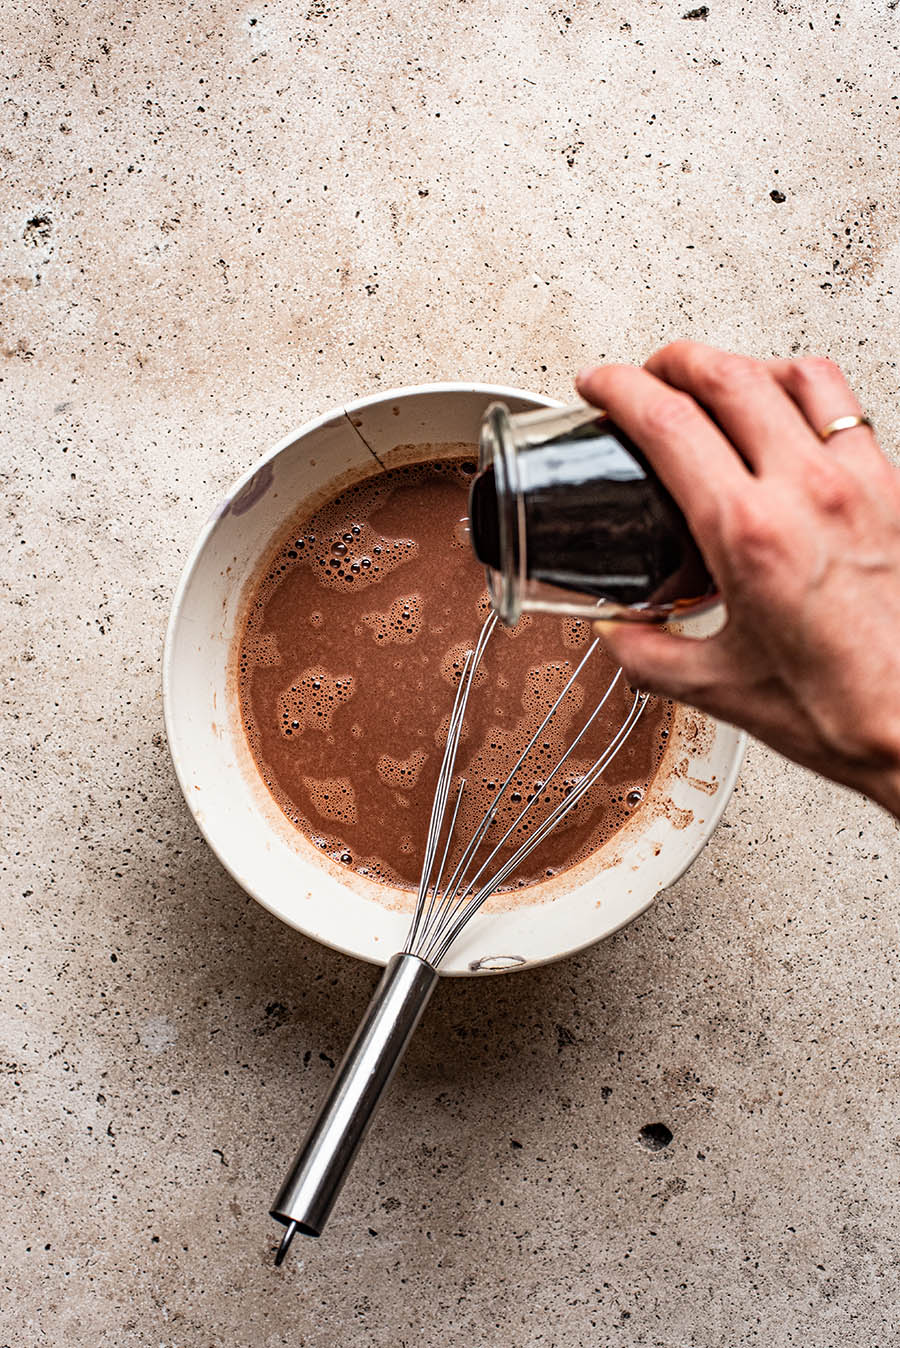 Adding date syrup to chocolate and coconut milk mixture.